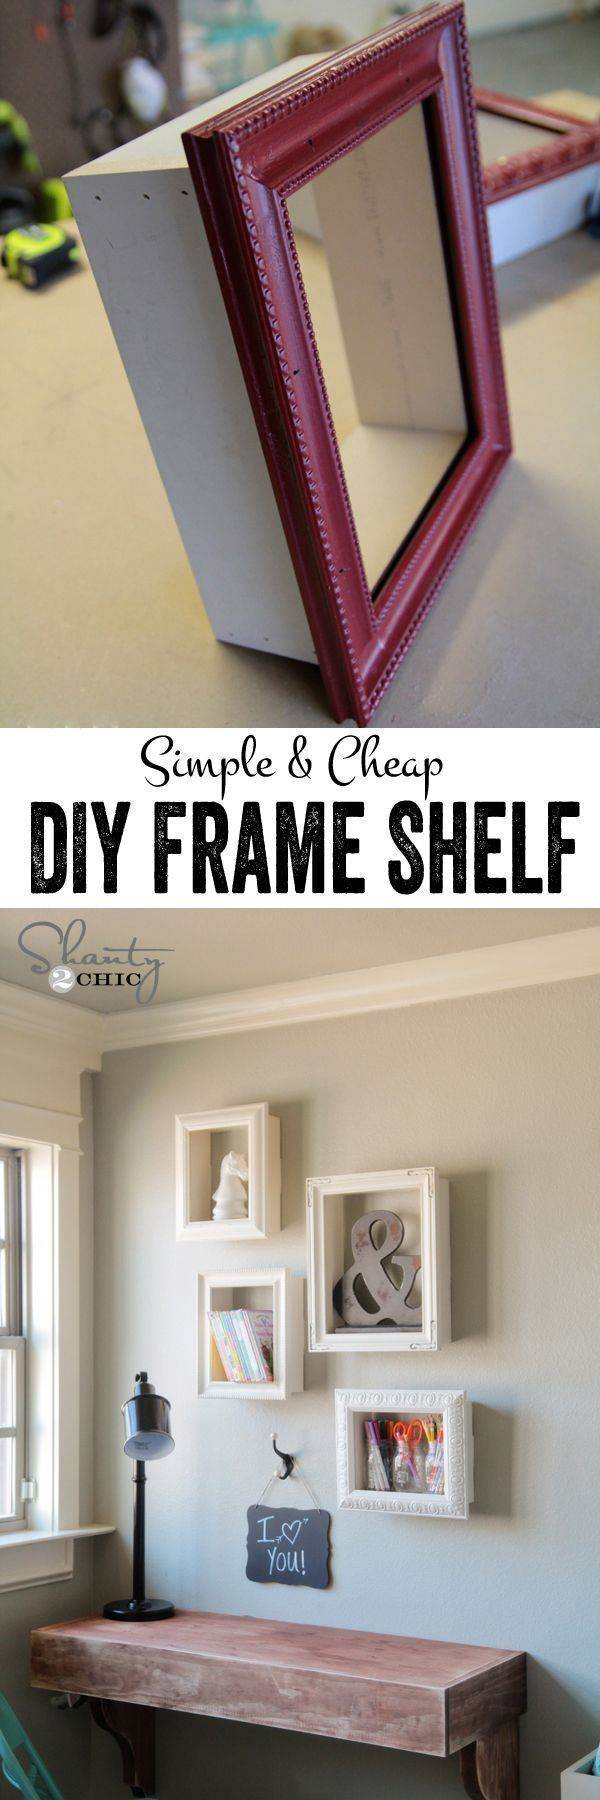 nice Low Budget Hight Impact DIY Home Decor Projects by http://www.homedecorbydana.xyz/budget-home-decorating/low-budget-hight-impact-diy-home-decor-projects-6/